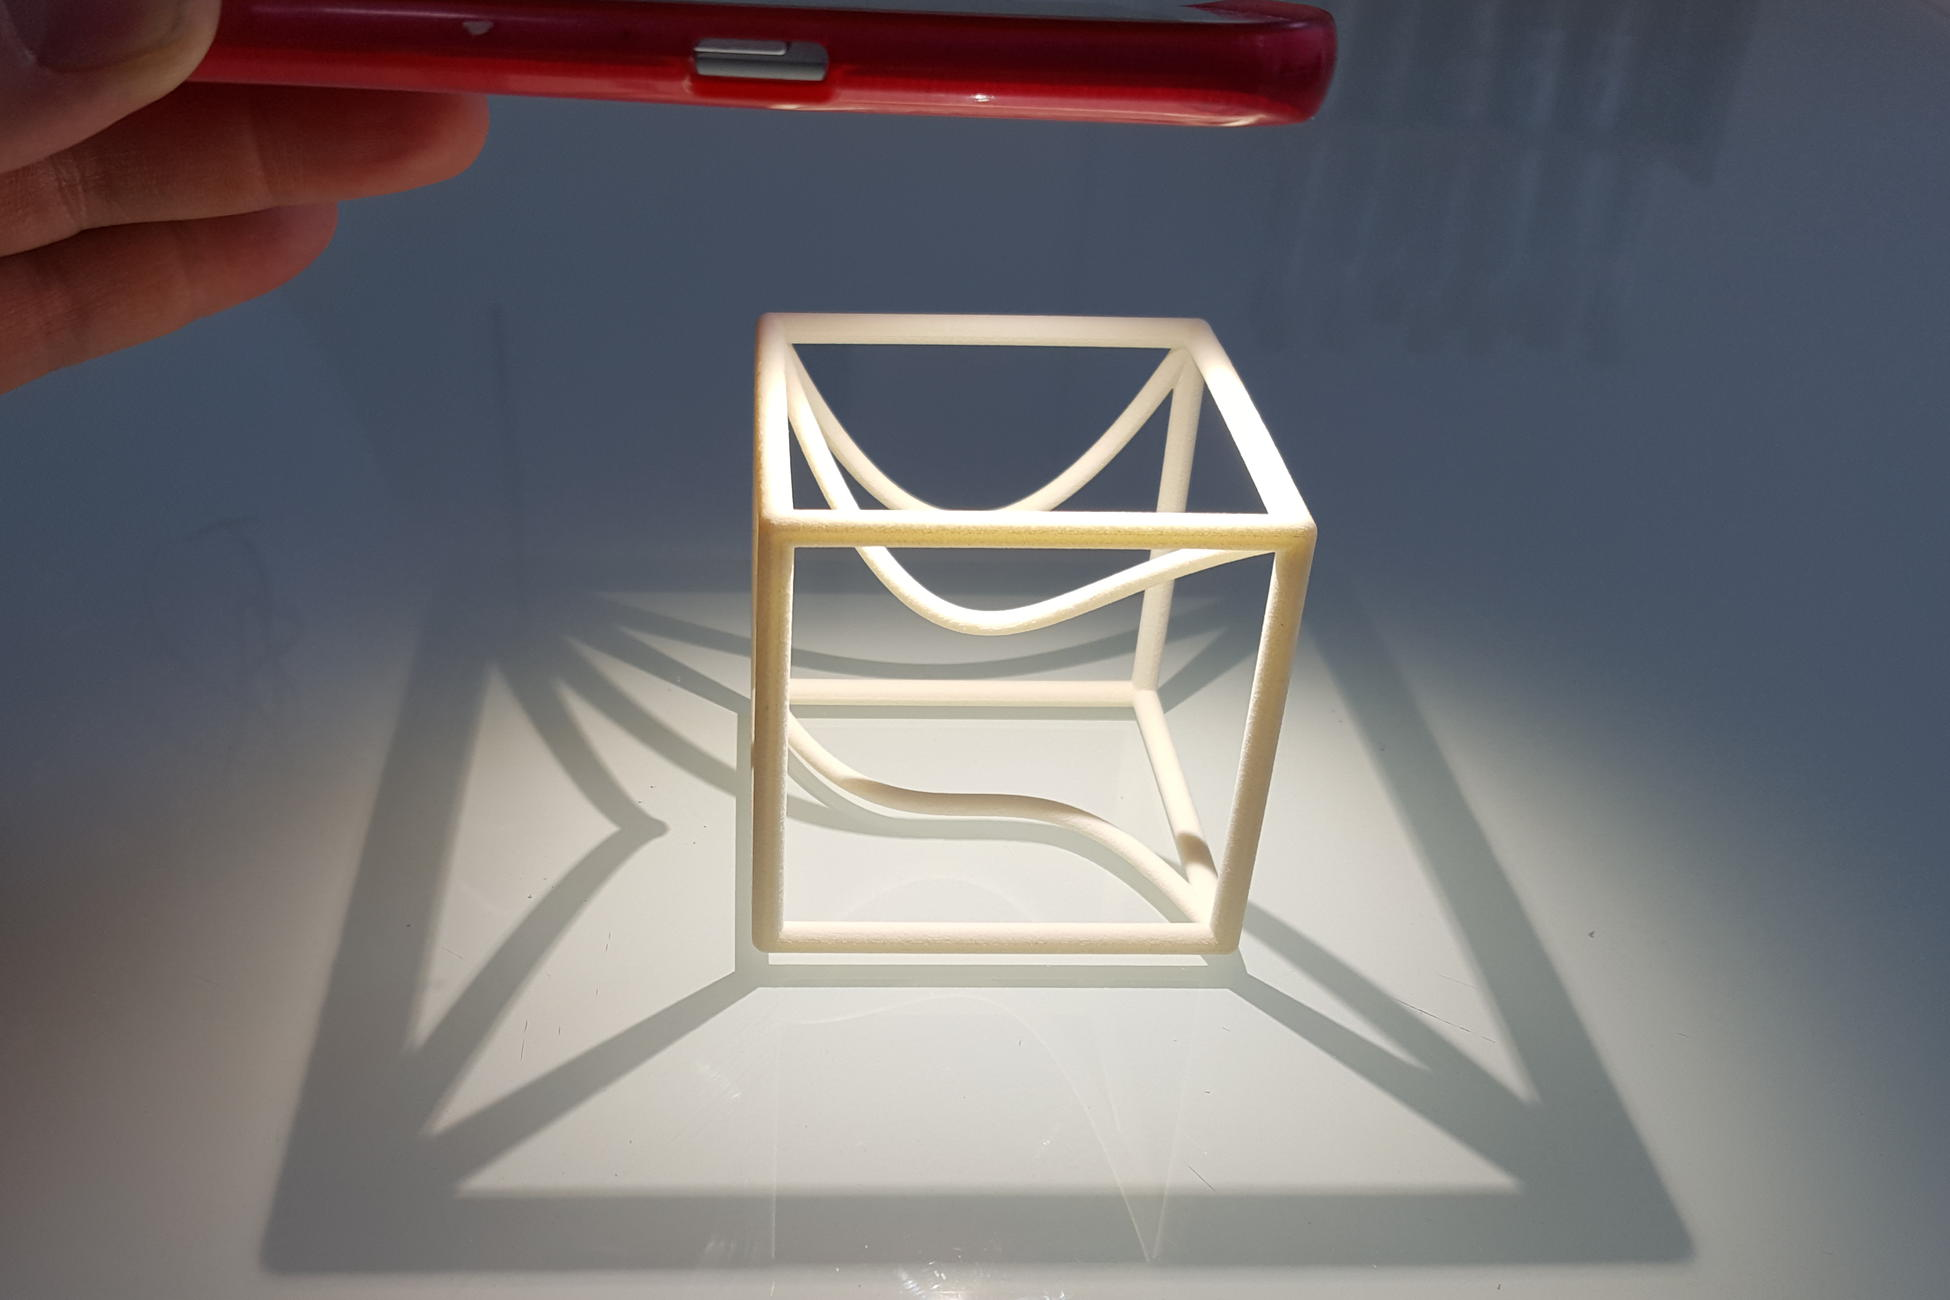 Space Curve in a cube with projections (1b) - a MO-Labs math model on Math-Sculpture.com